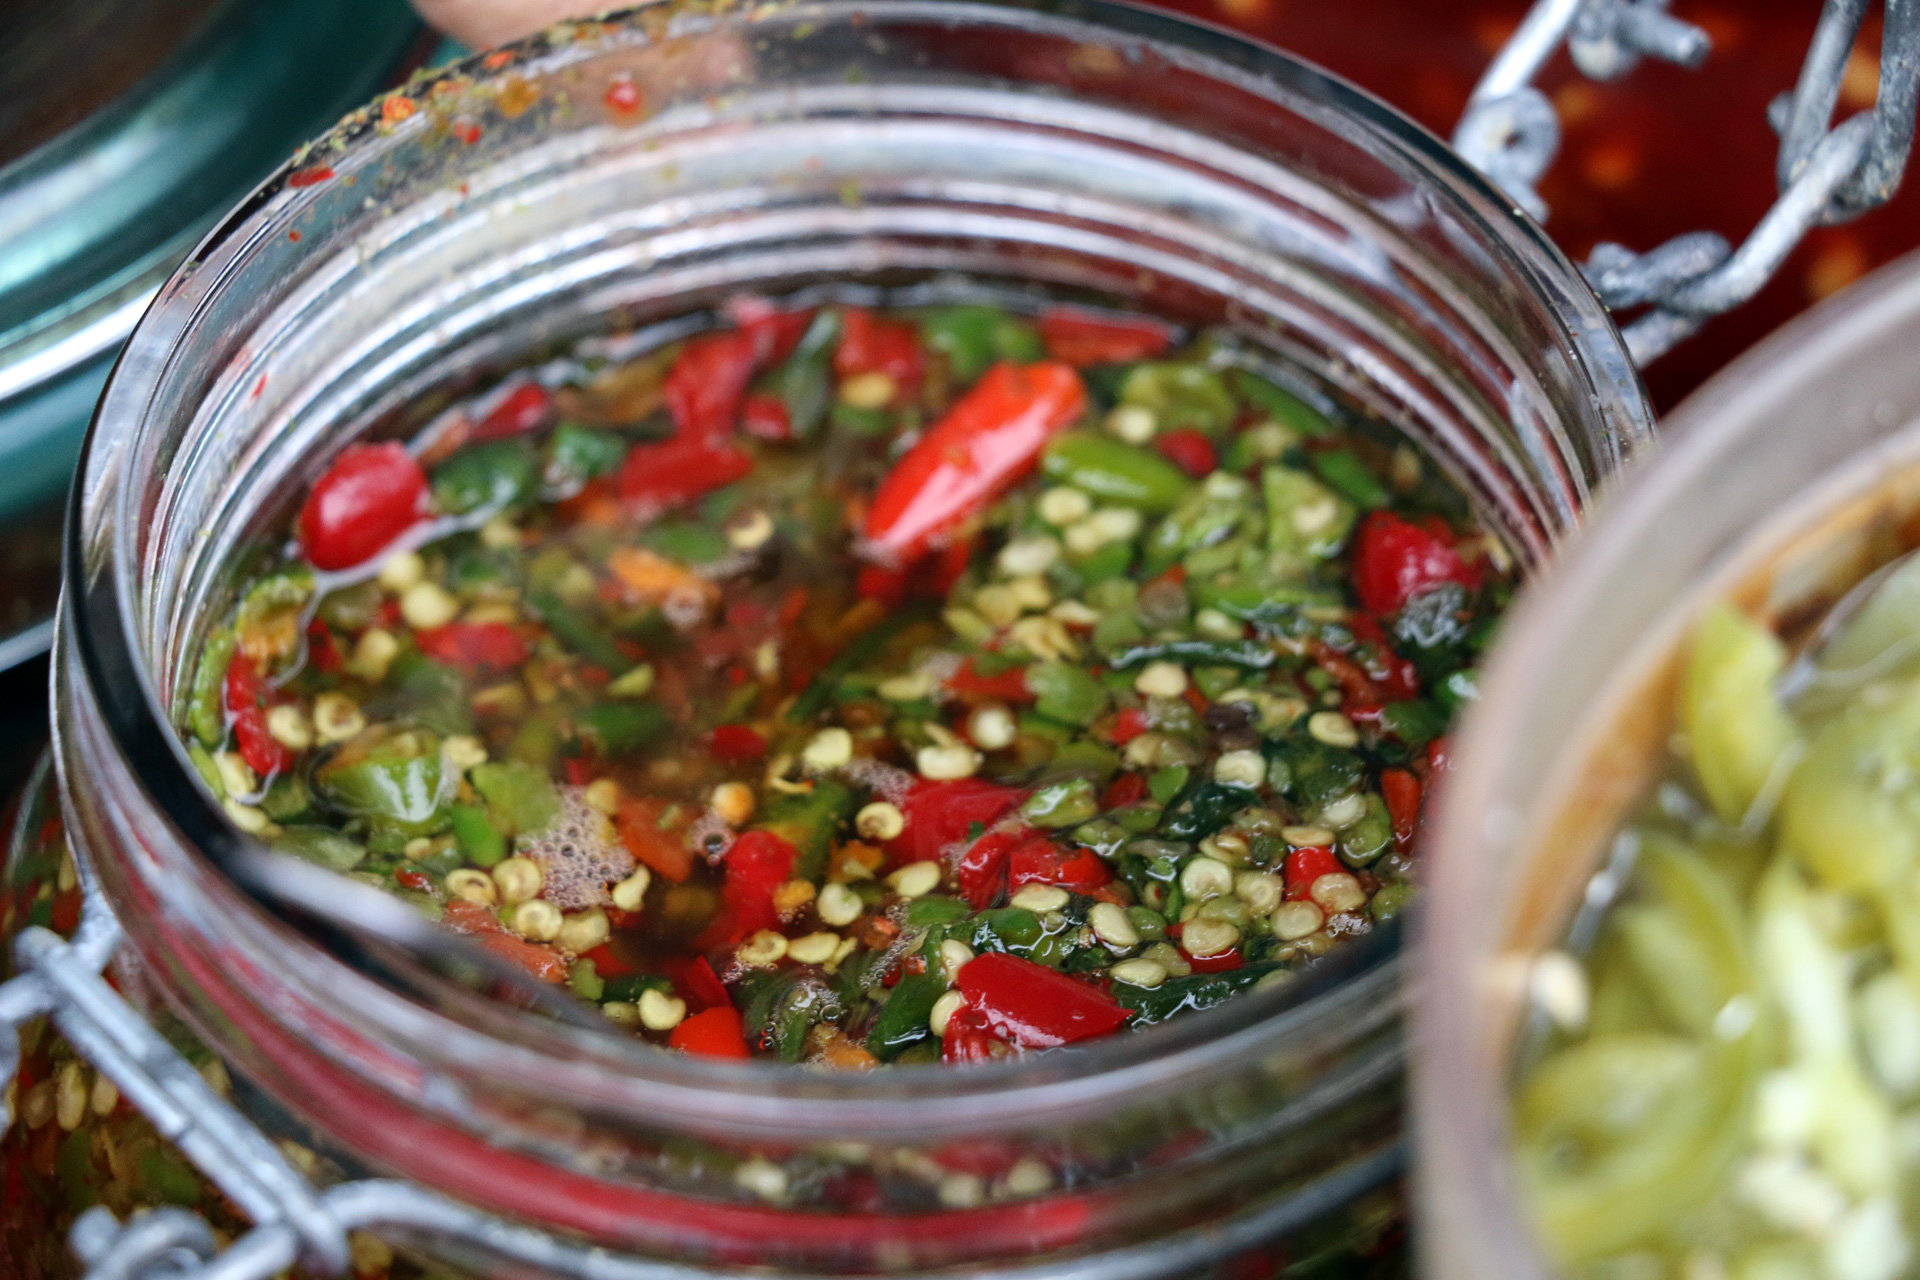 Spicy chili sauce at the condiment bar.